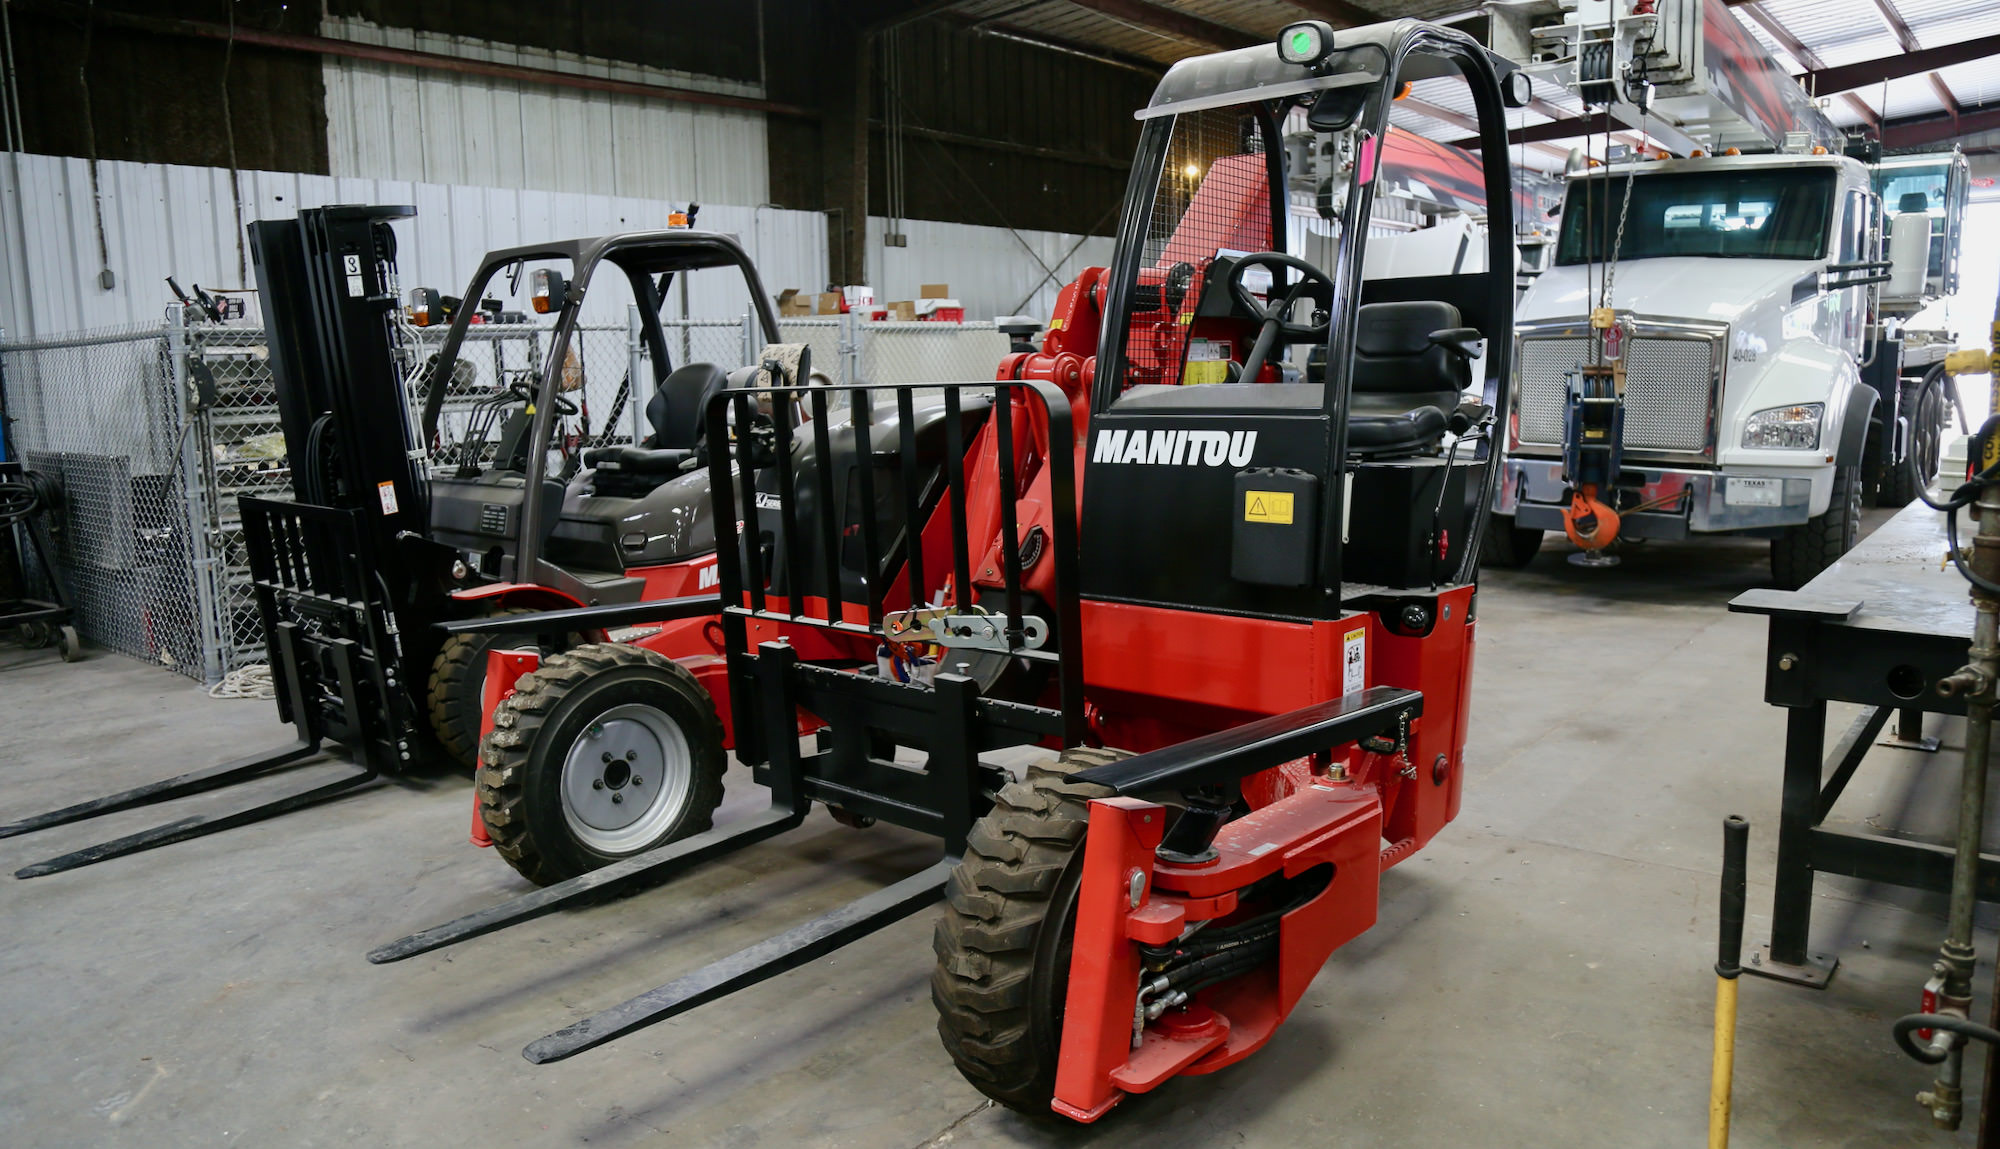 Manitou truck-mounted forklift